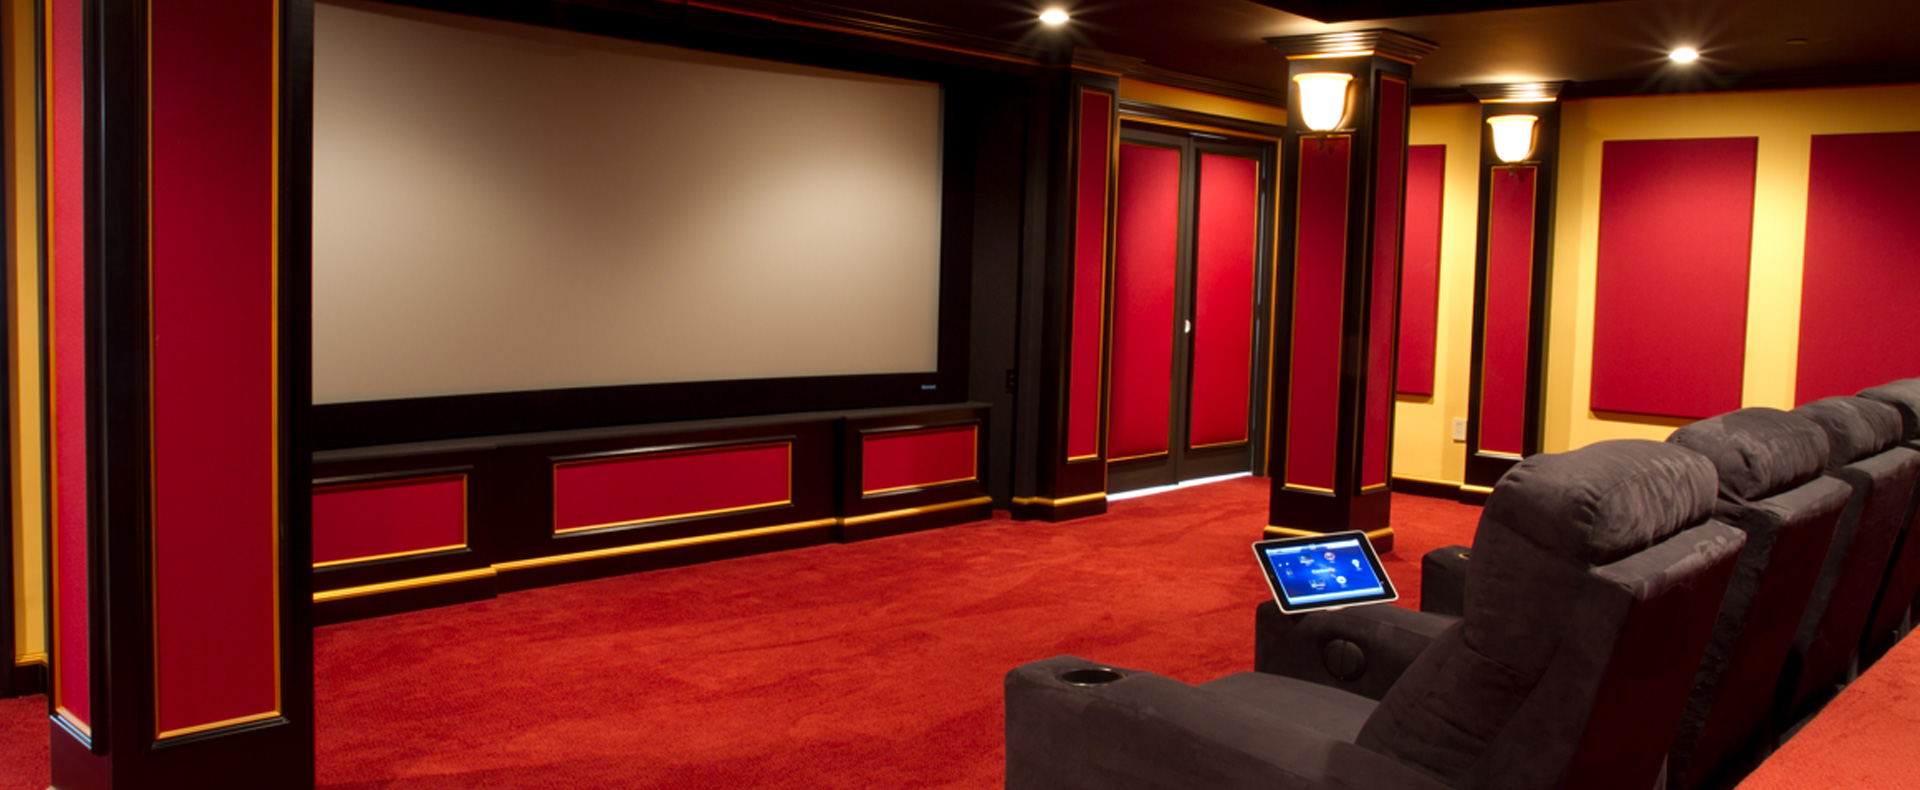 Automating Your Home Theatre